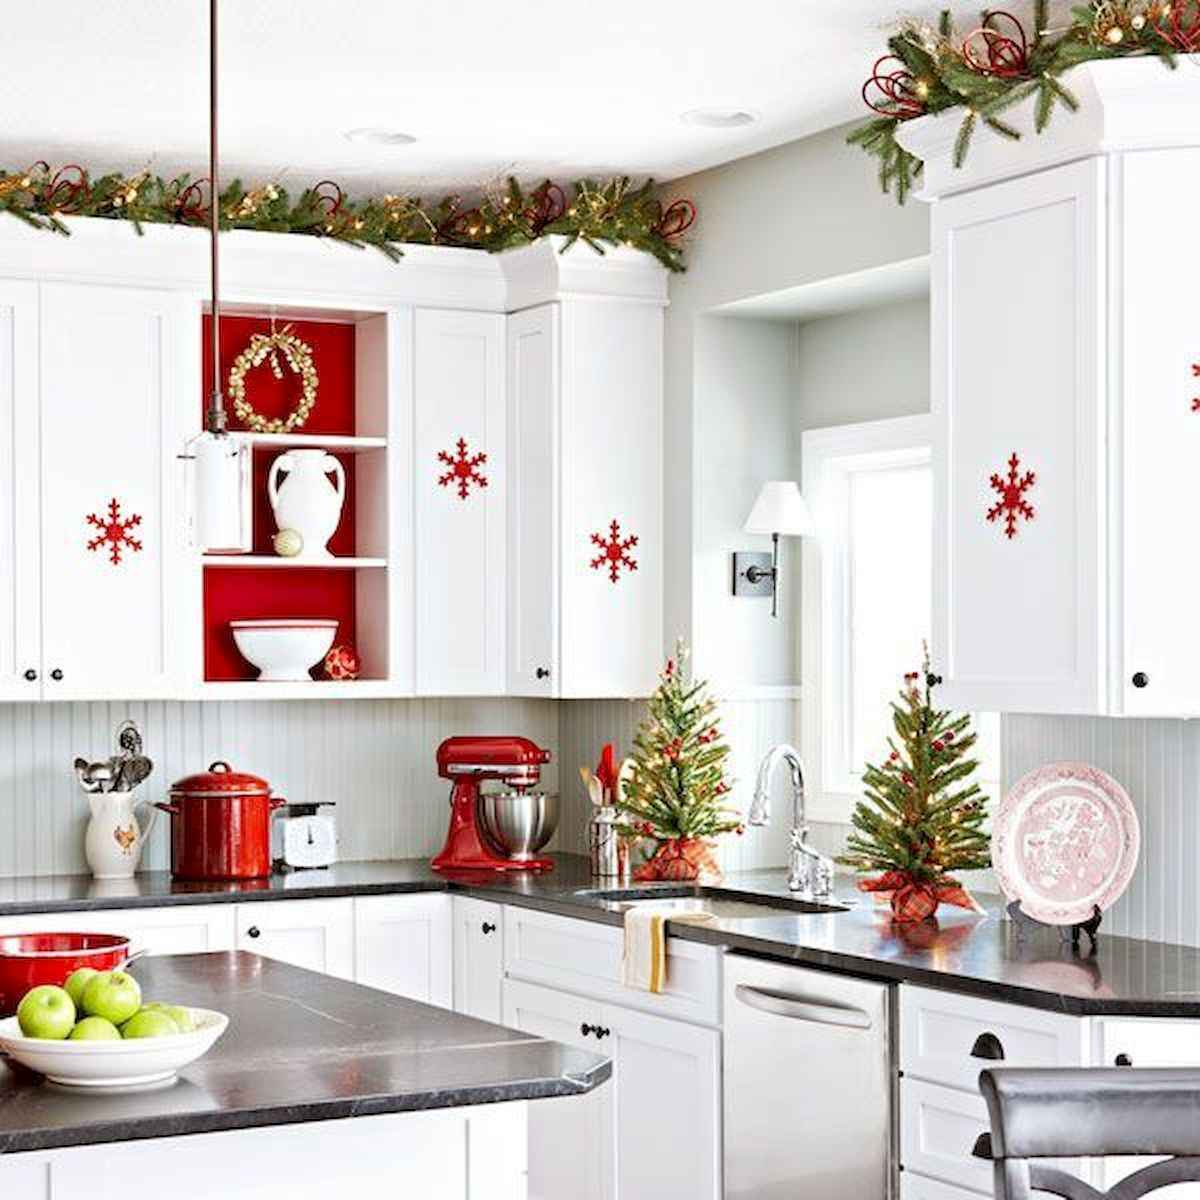 20 Elegant Christmas Kitchen Decor Ideas And Makeover (11)